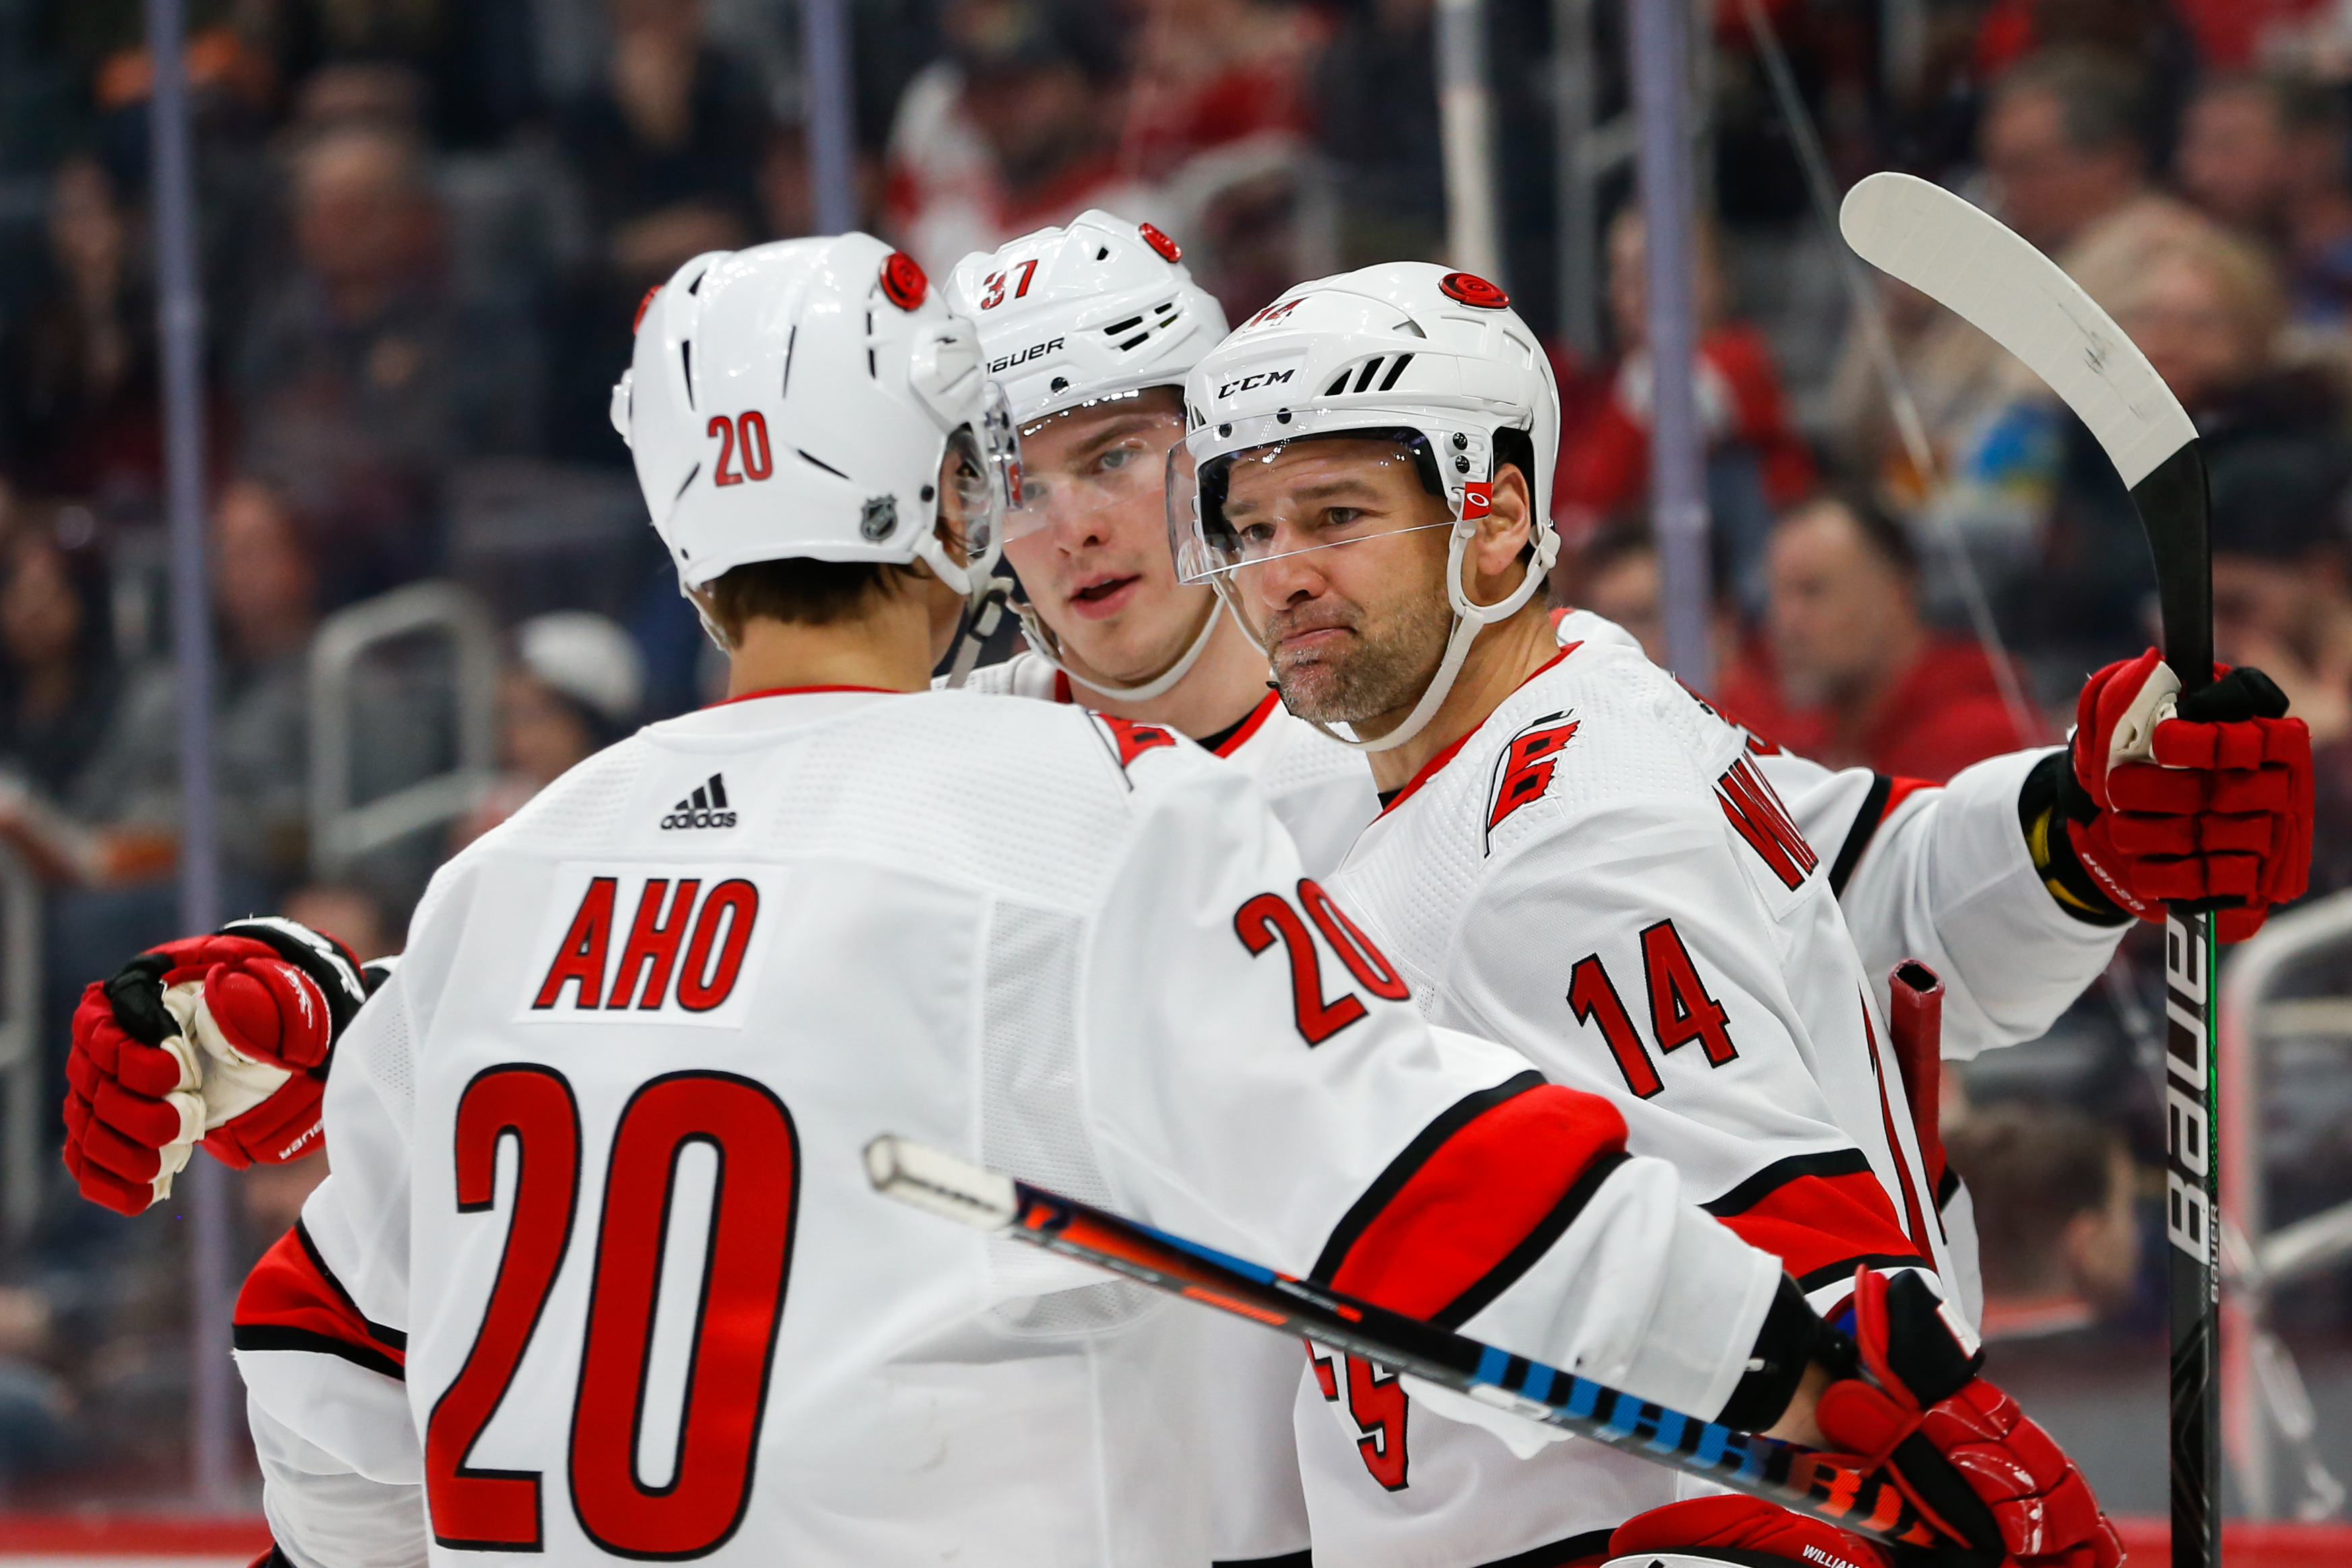 NHL: MAR 10 Hurricanes at Red Wings